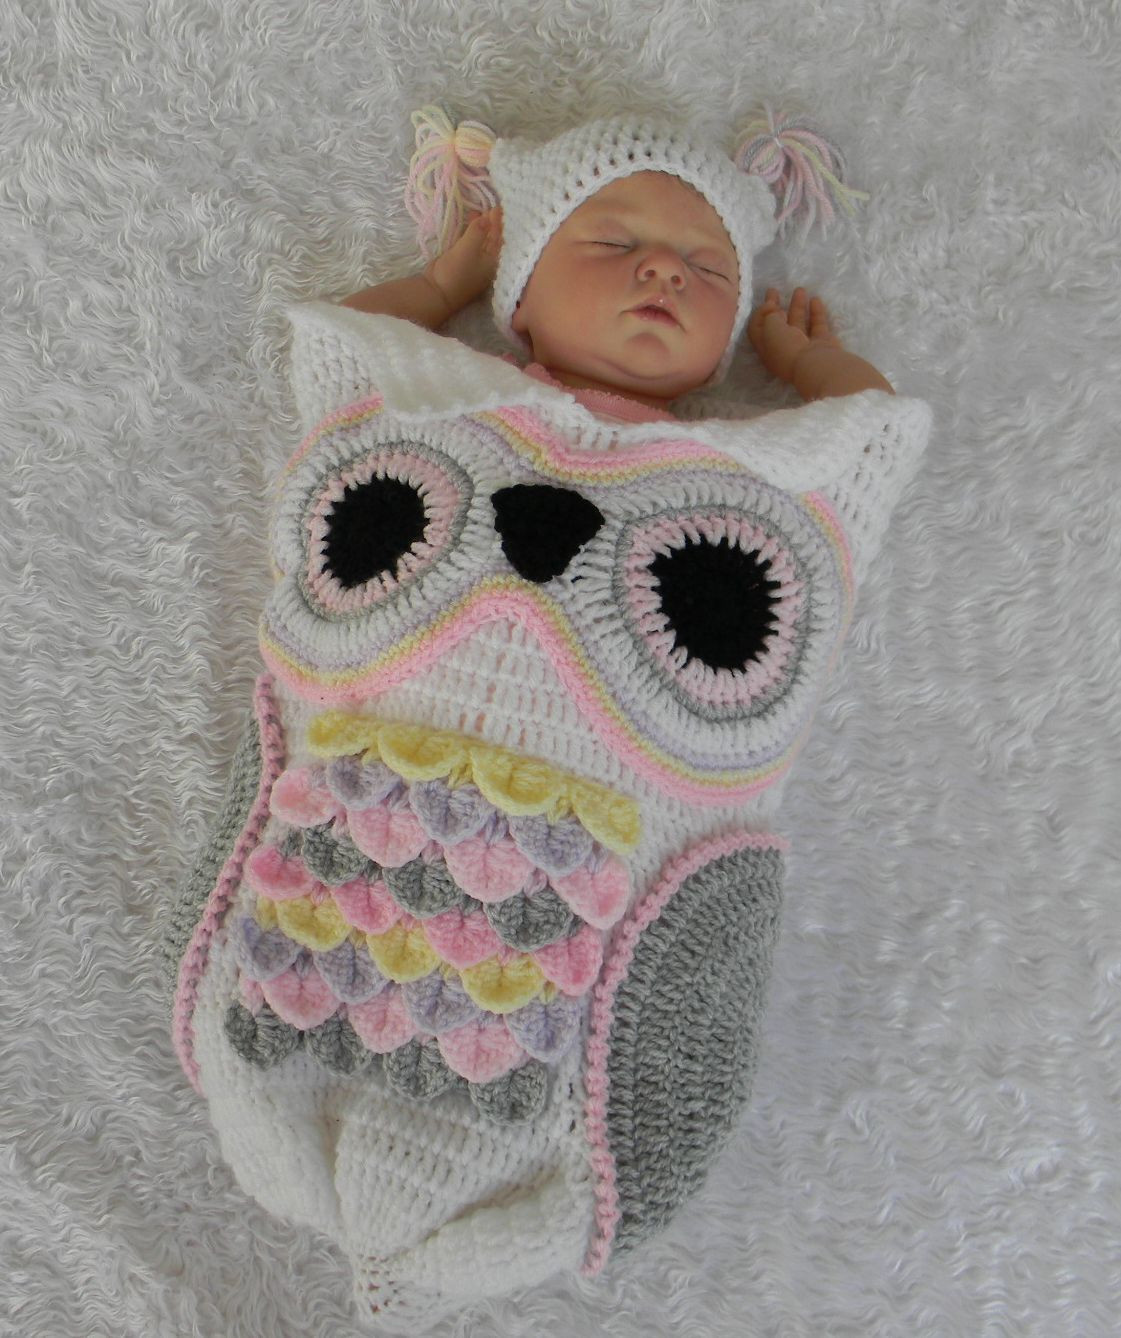 Baby Cocoon Crochet Pattern Elegant Crochet Pattern for Owl Cocoon Papoose & Hat 3 Sizes 245 Of Marvelous 49 Images Baby Cocoon Crochet Pattern